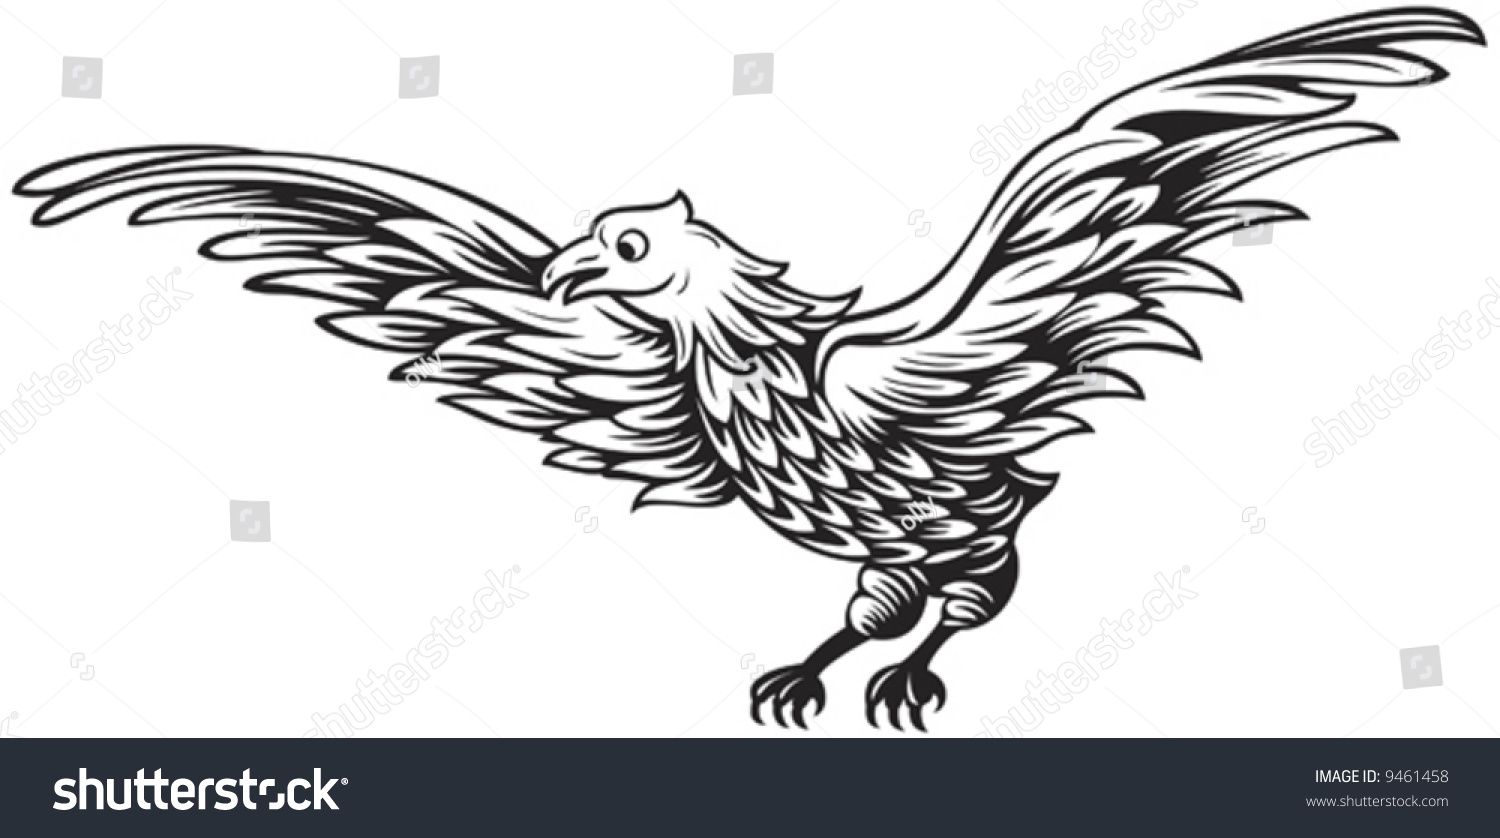 Black and white drawing of flying eagle stock photo